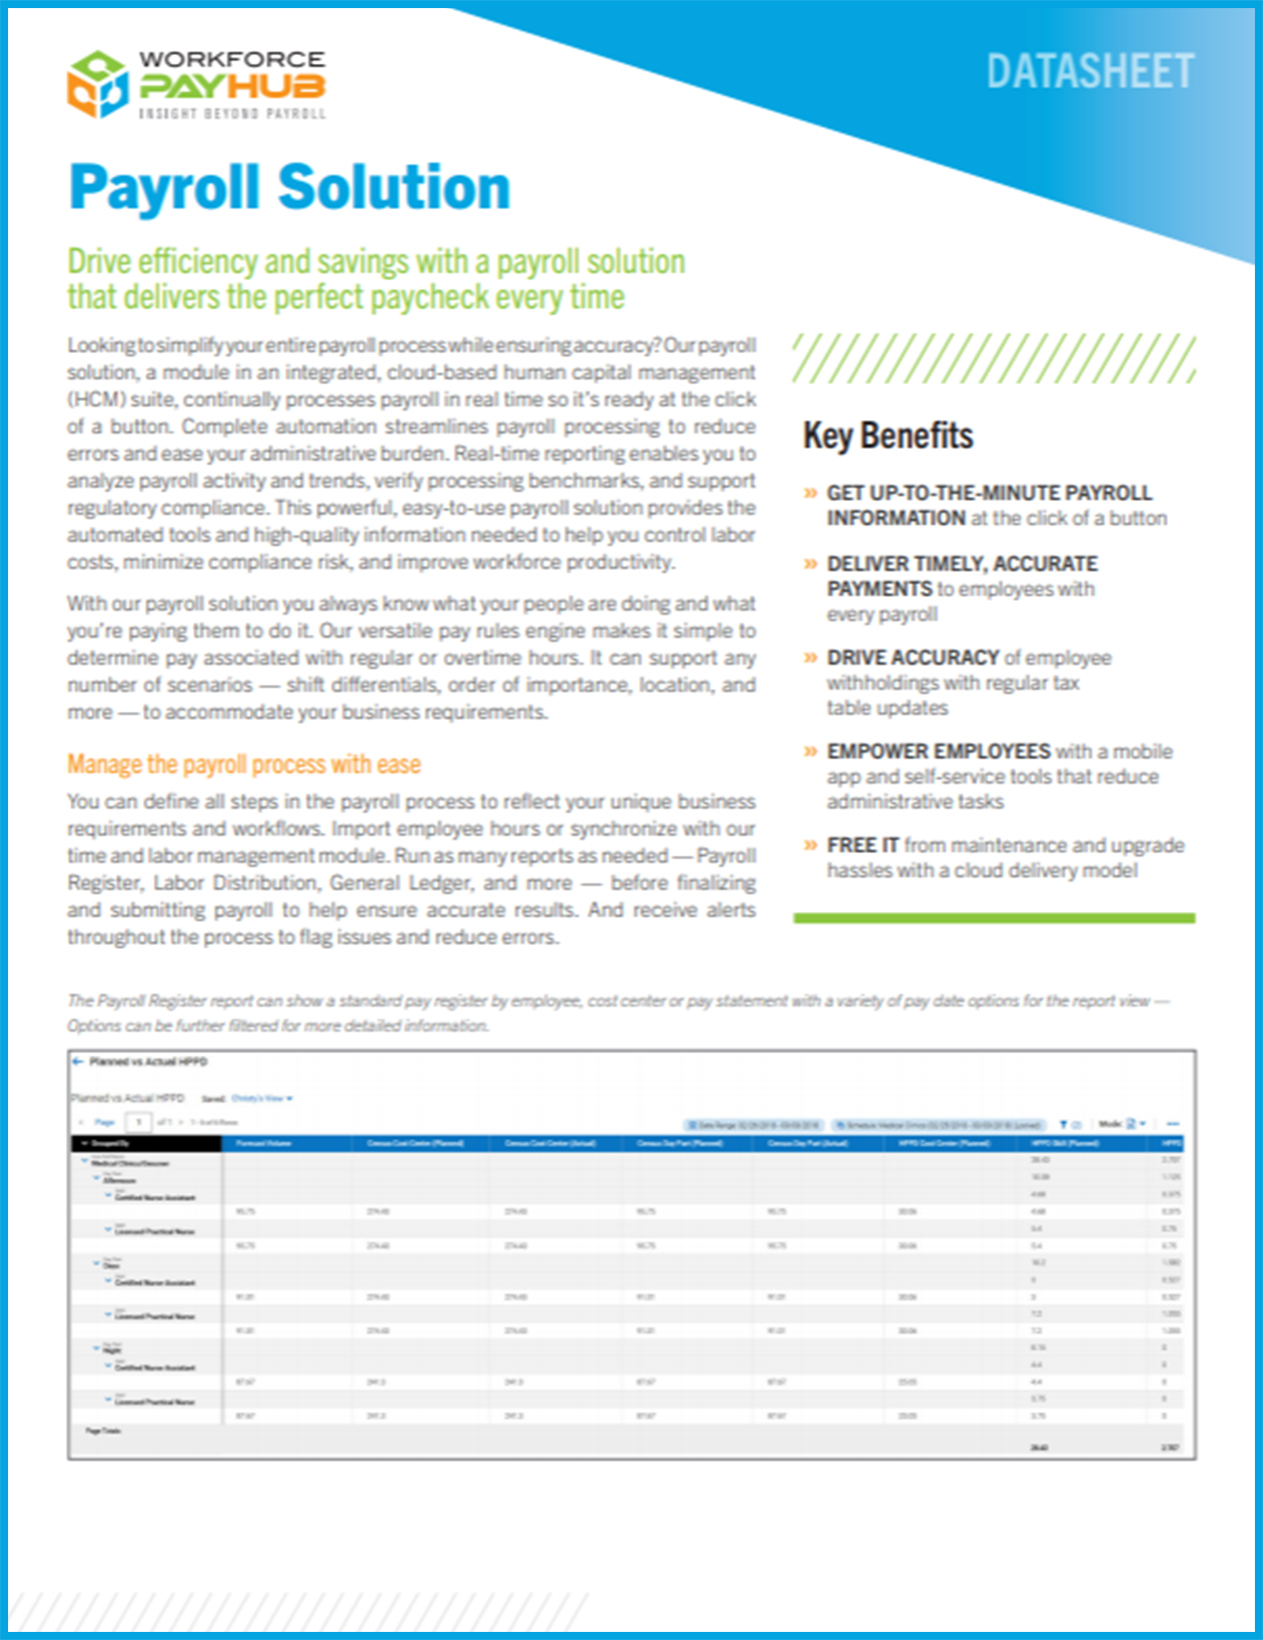 Michigan Payroll Solution Overview